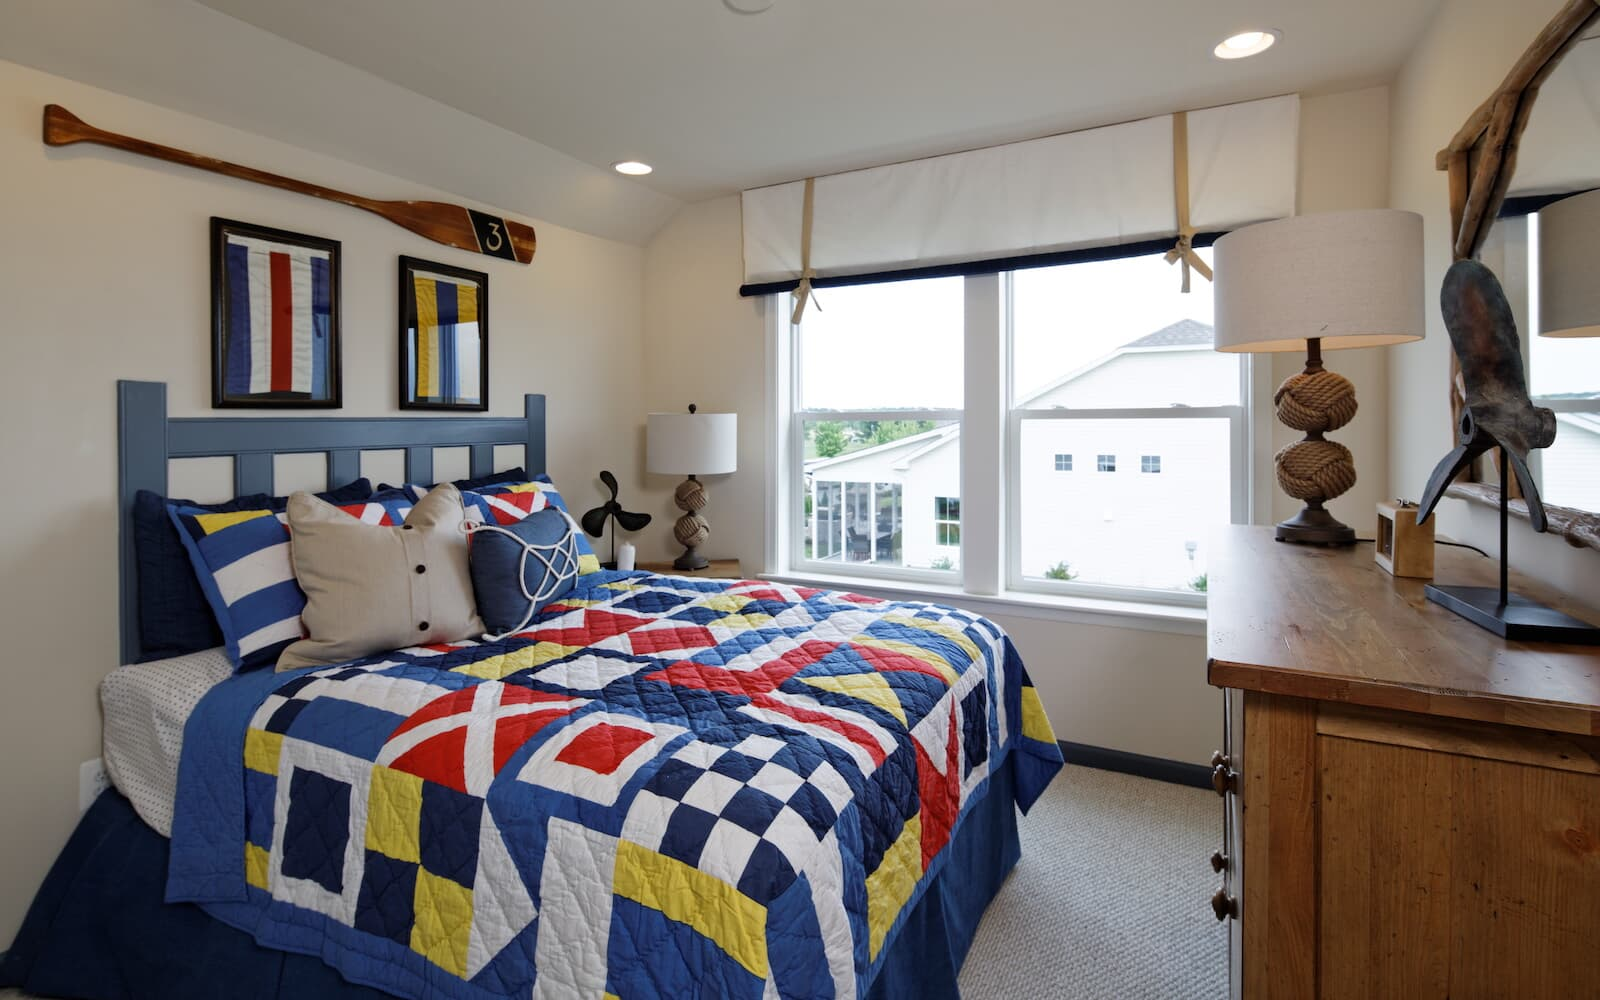 A secondary bedroom at the Bridgeport II at Easton Village by Brookfield Residential